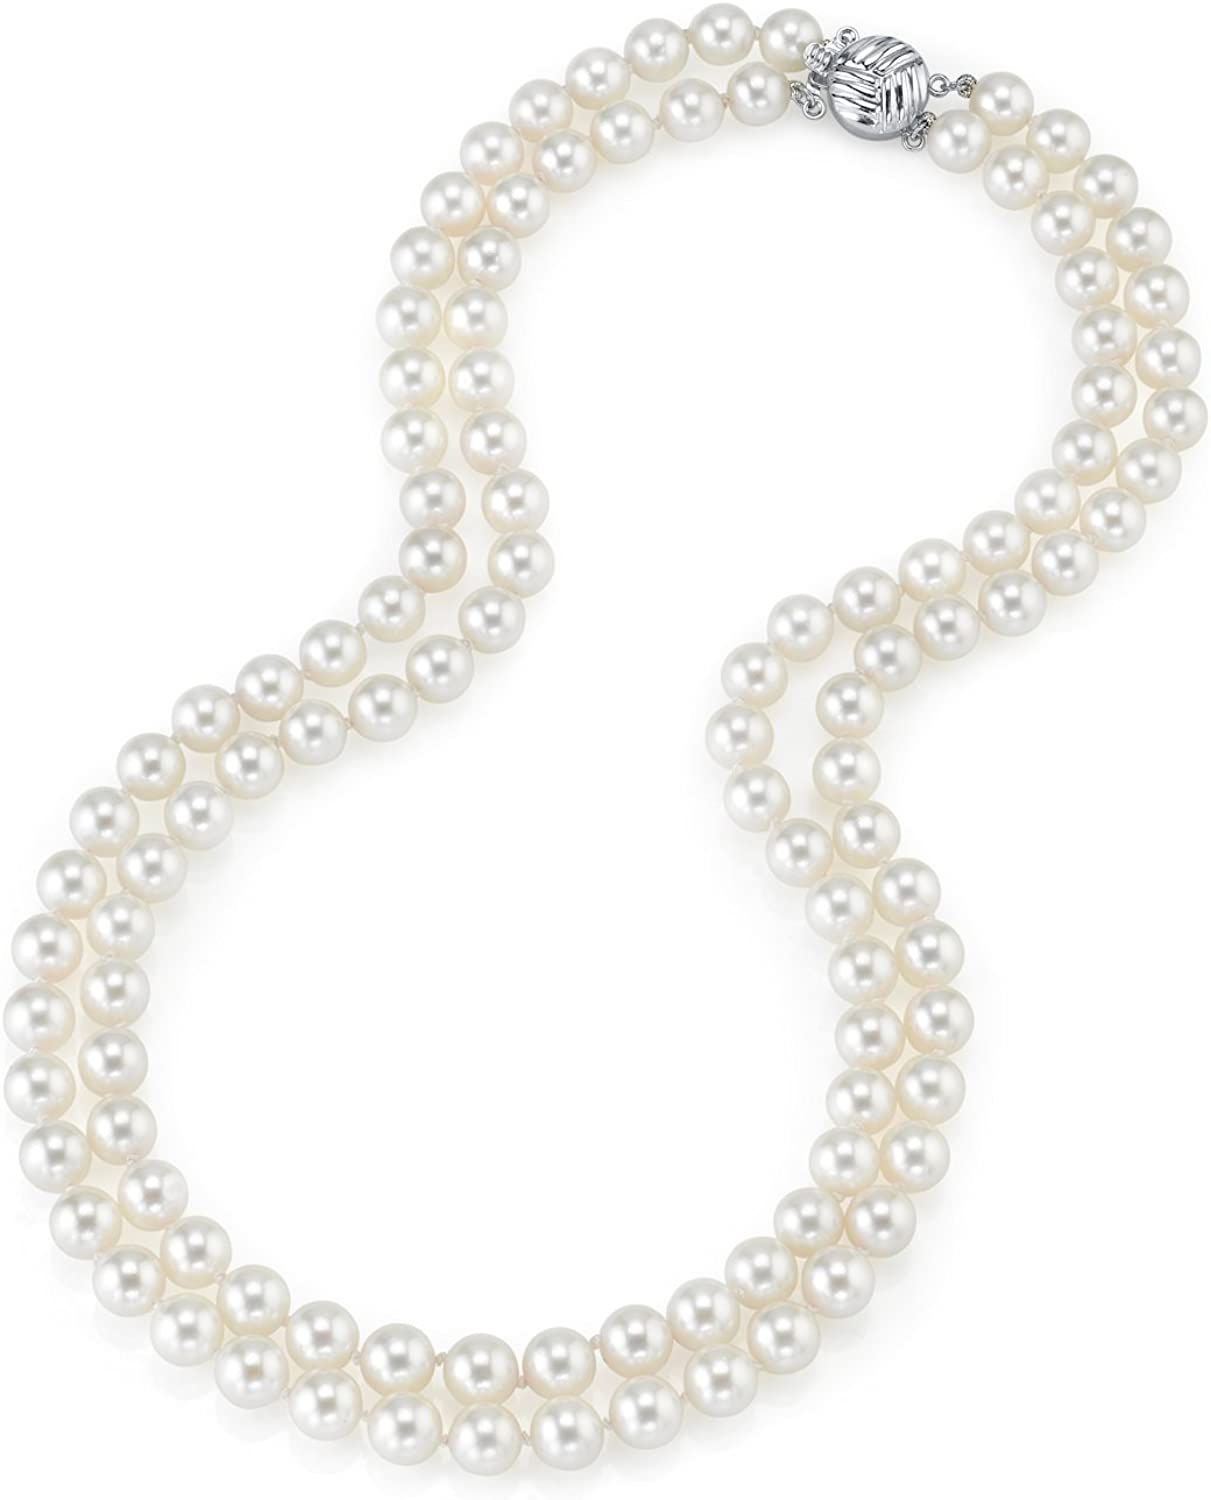 THE 2021new shipping free shipping PEARL SOURCE 14K Gold 7.5-8.0mm J White Genuine Double Round famous